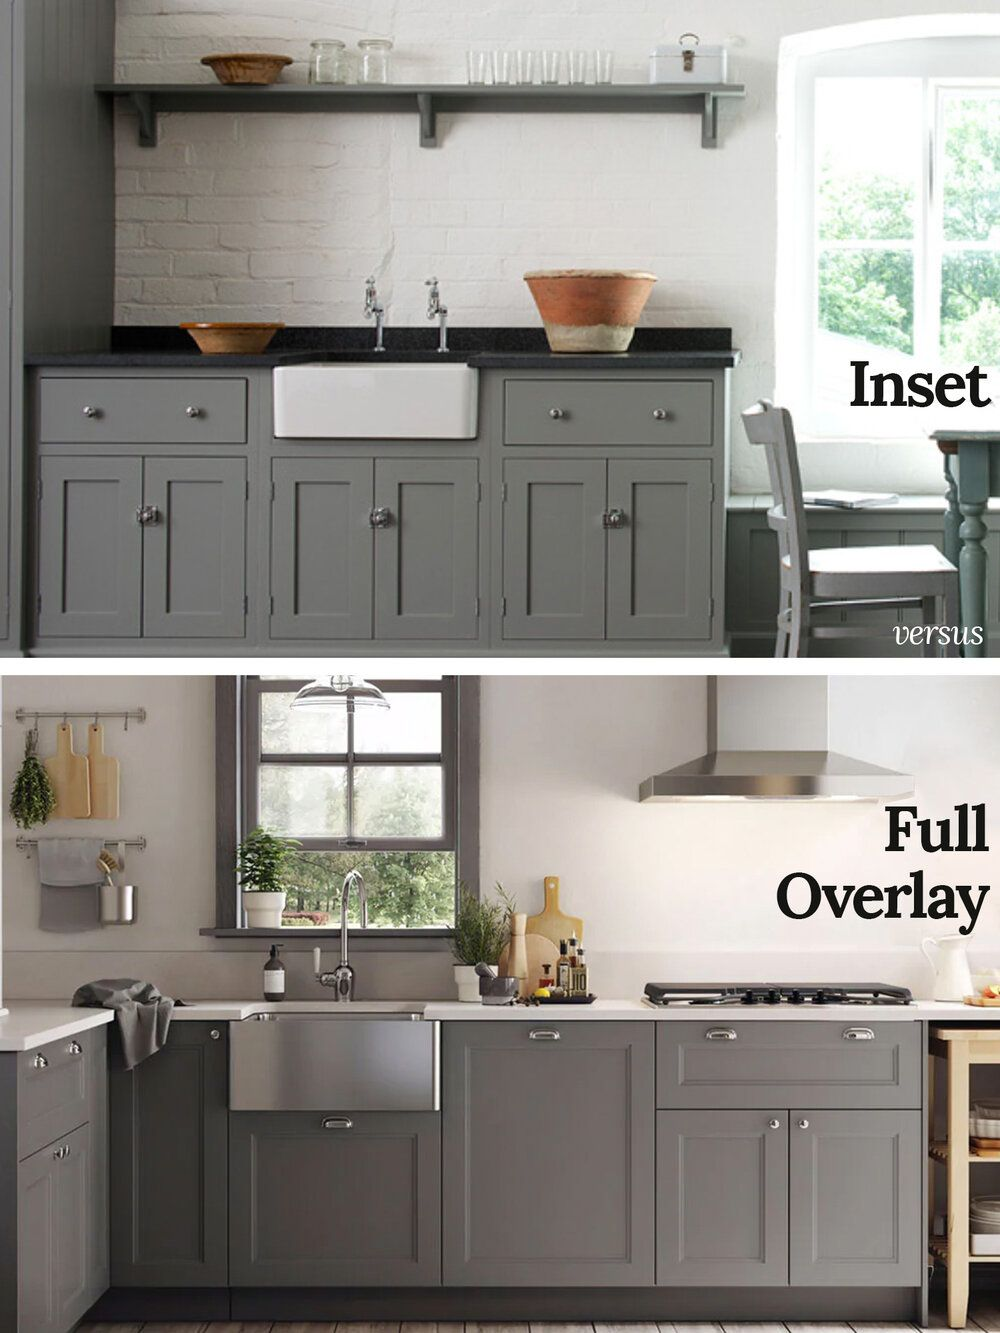 Kitchen Direct Cabinets Northeast Factory Direct Kitchen Cabinets Reviews Antique White Kitchen Kitchen Design Kitchen Renovation We Offer Quality Kitchen Cabinets At A Wholesale Price In San